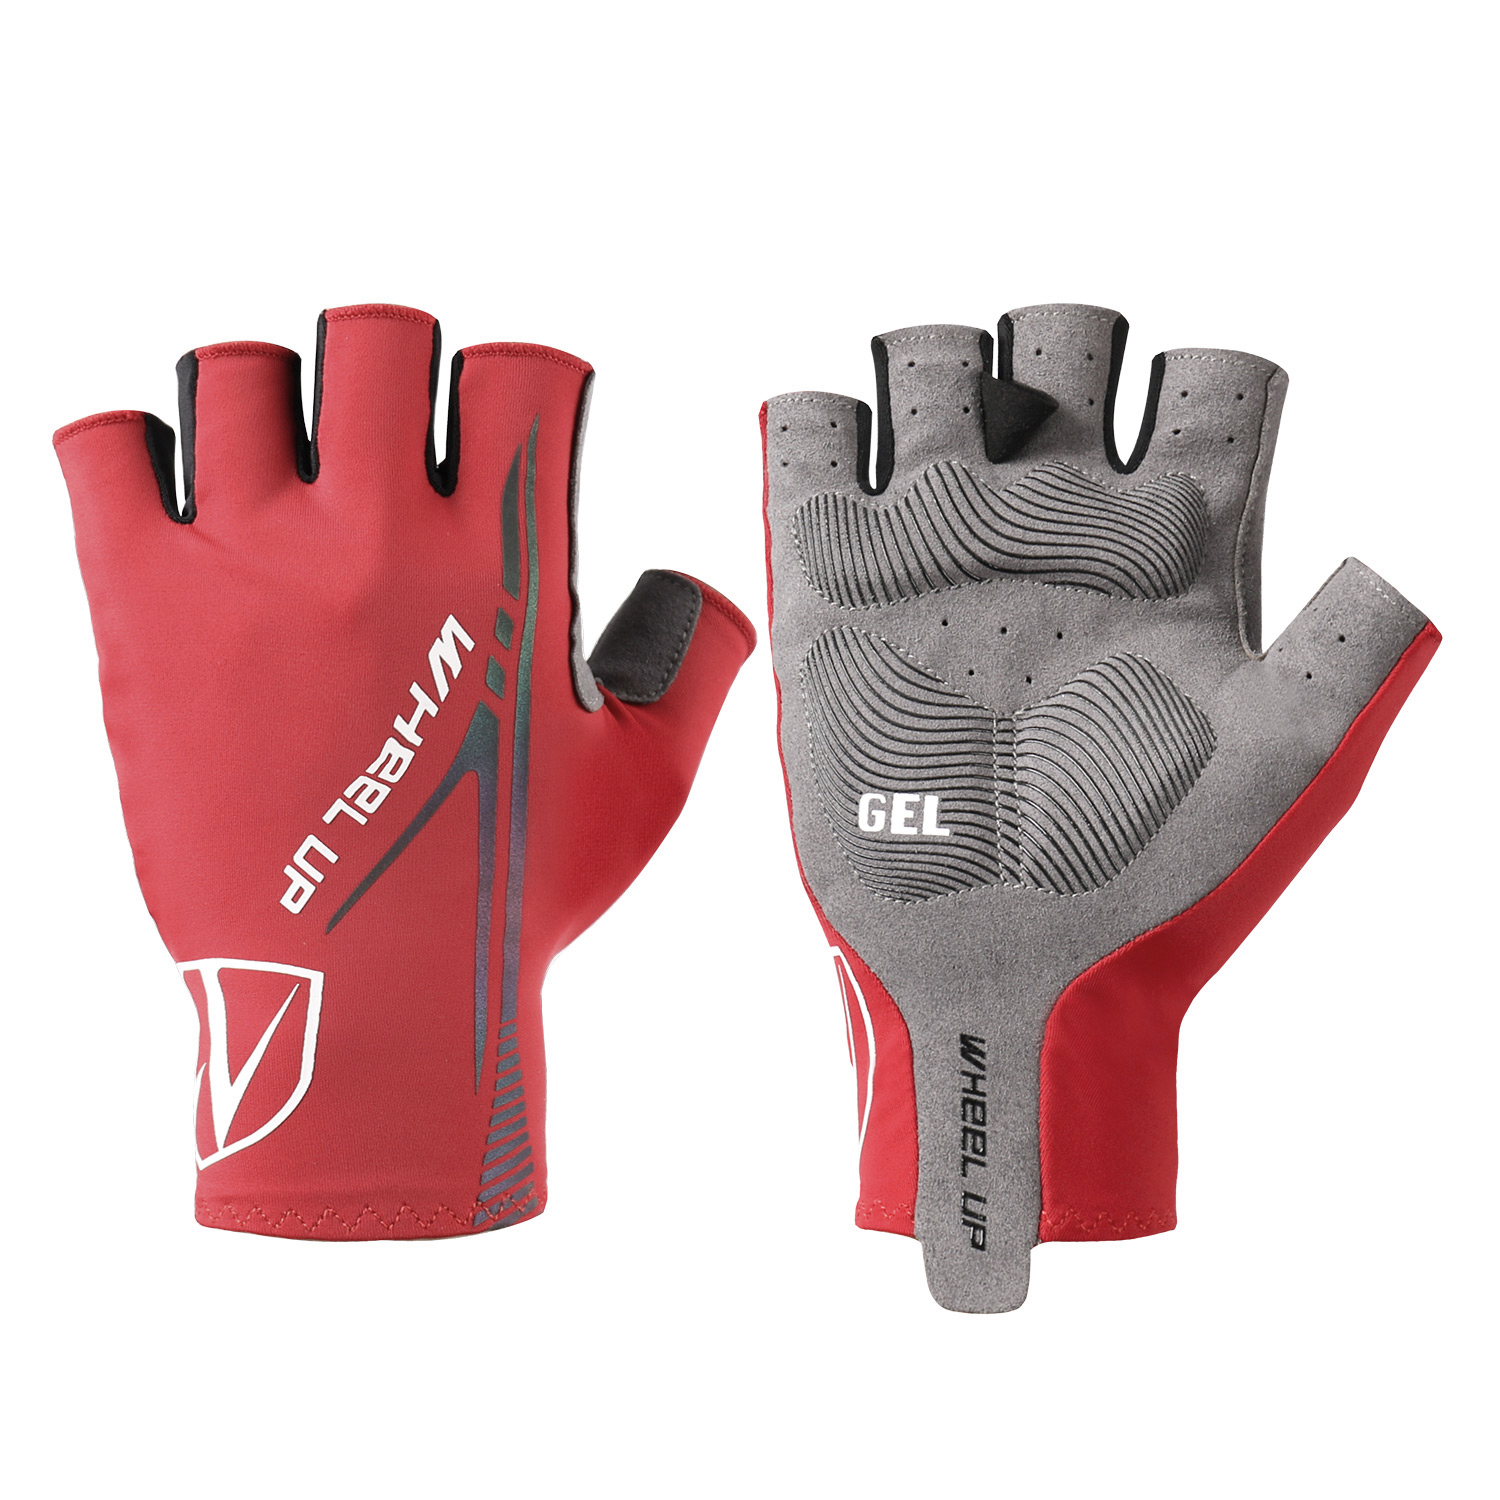 Details about  /Professional Cycling Gloves Full Finger Half Finger Anti-slip Touch Screen Bike